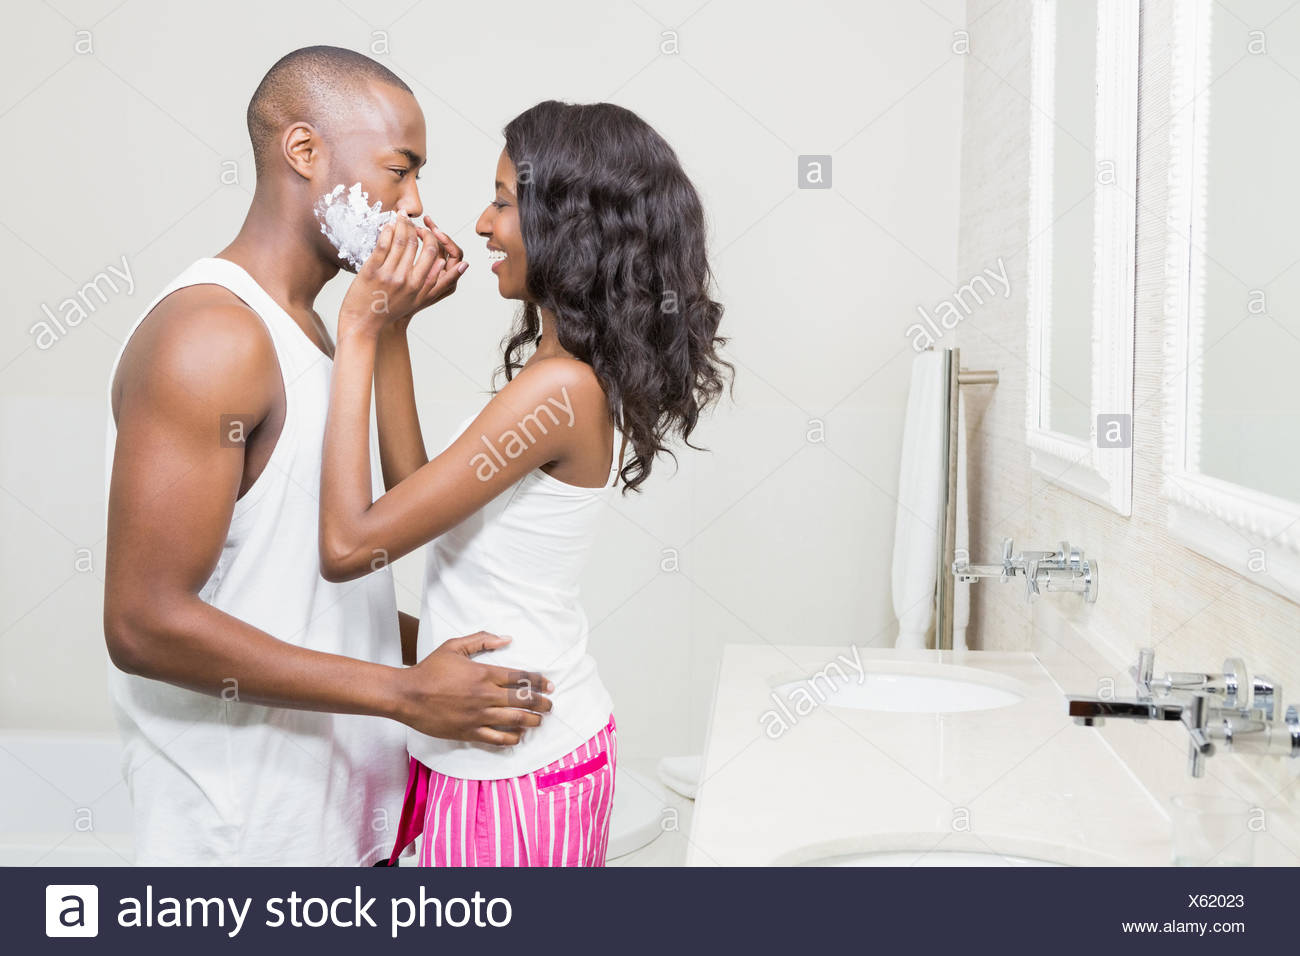 Young woman applying shaving cream on young mans face - Stock Image